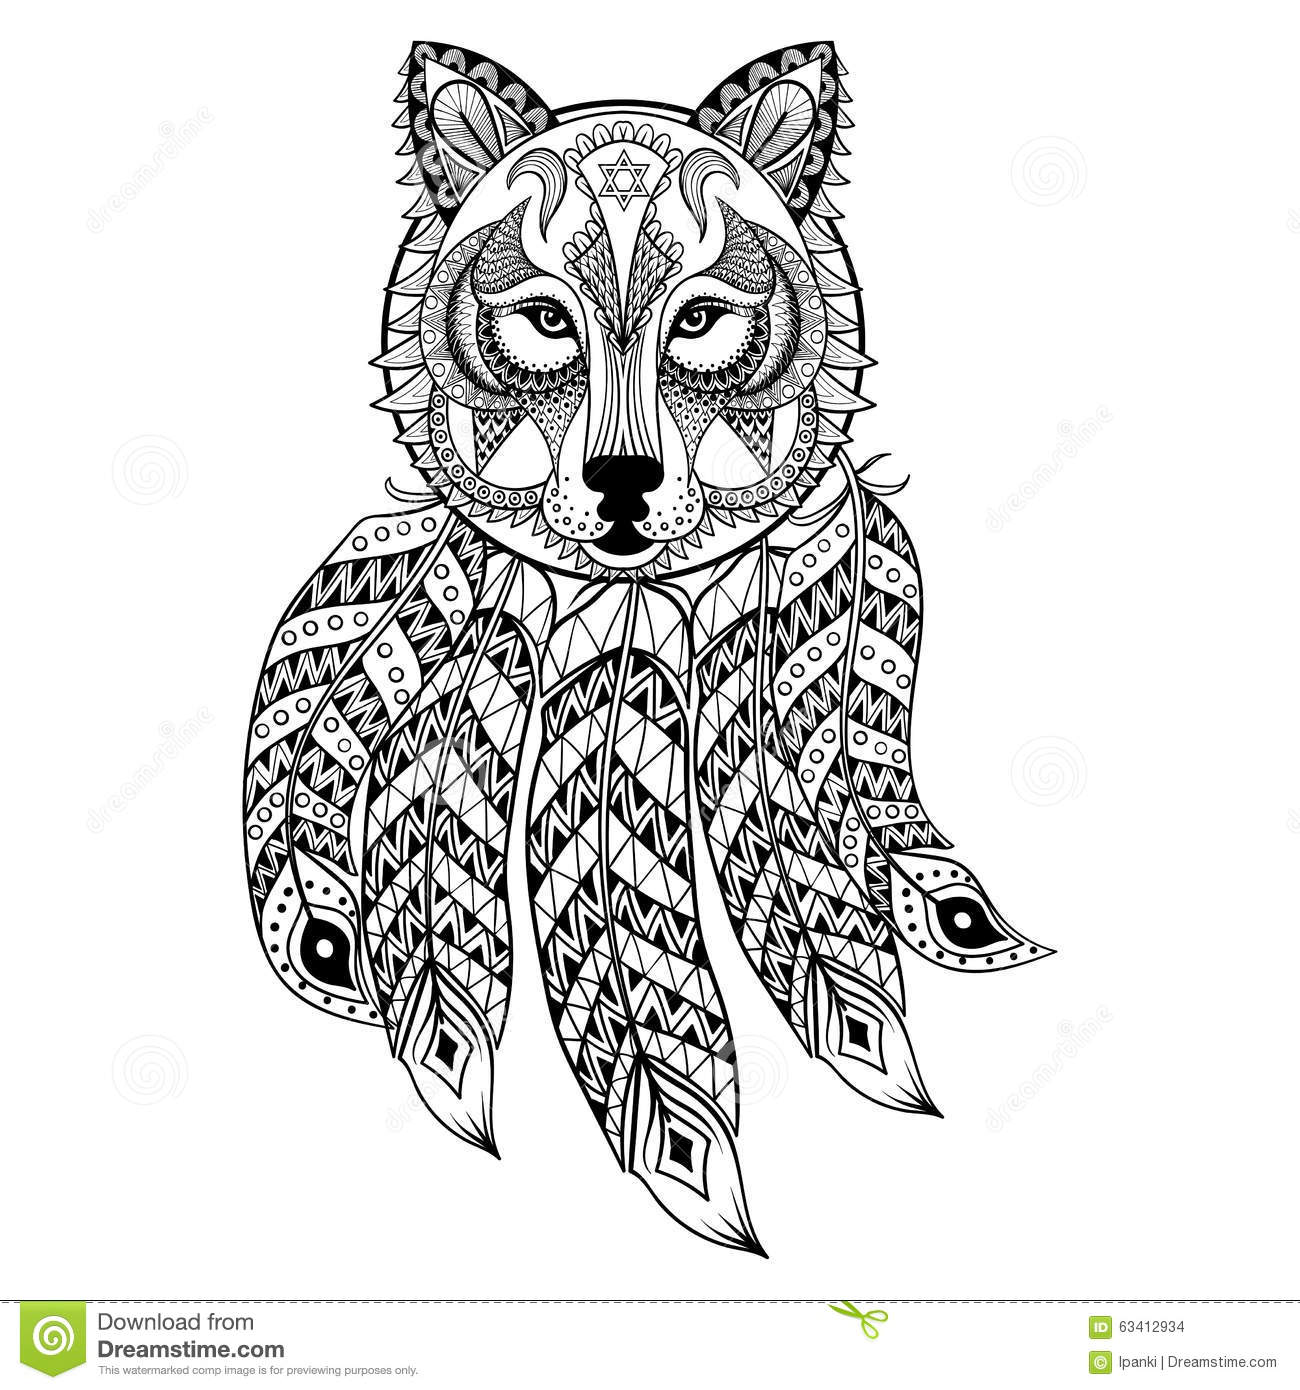 Stress Coloring Pages Animals : Anti stress animal coloring pages